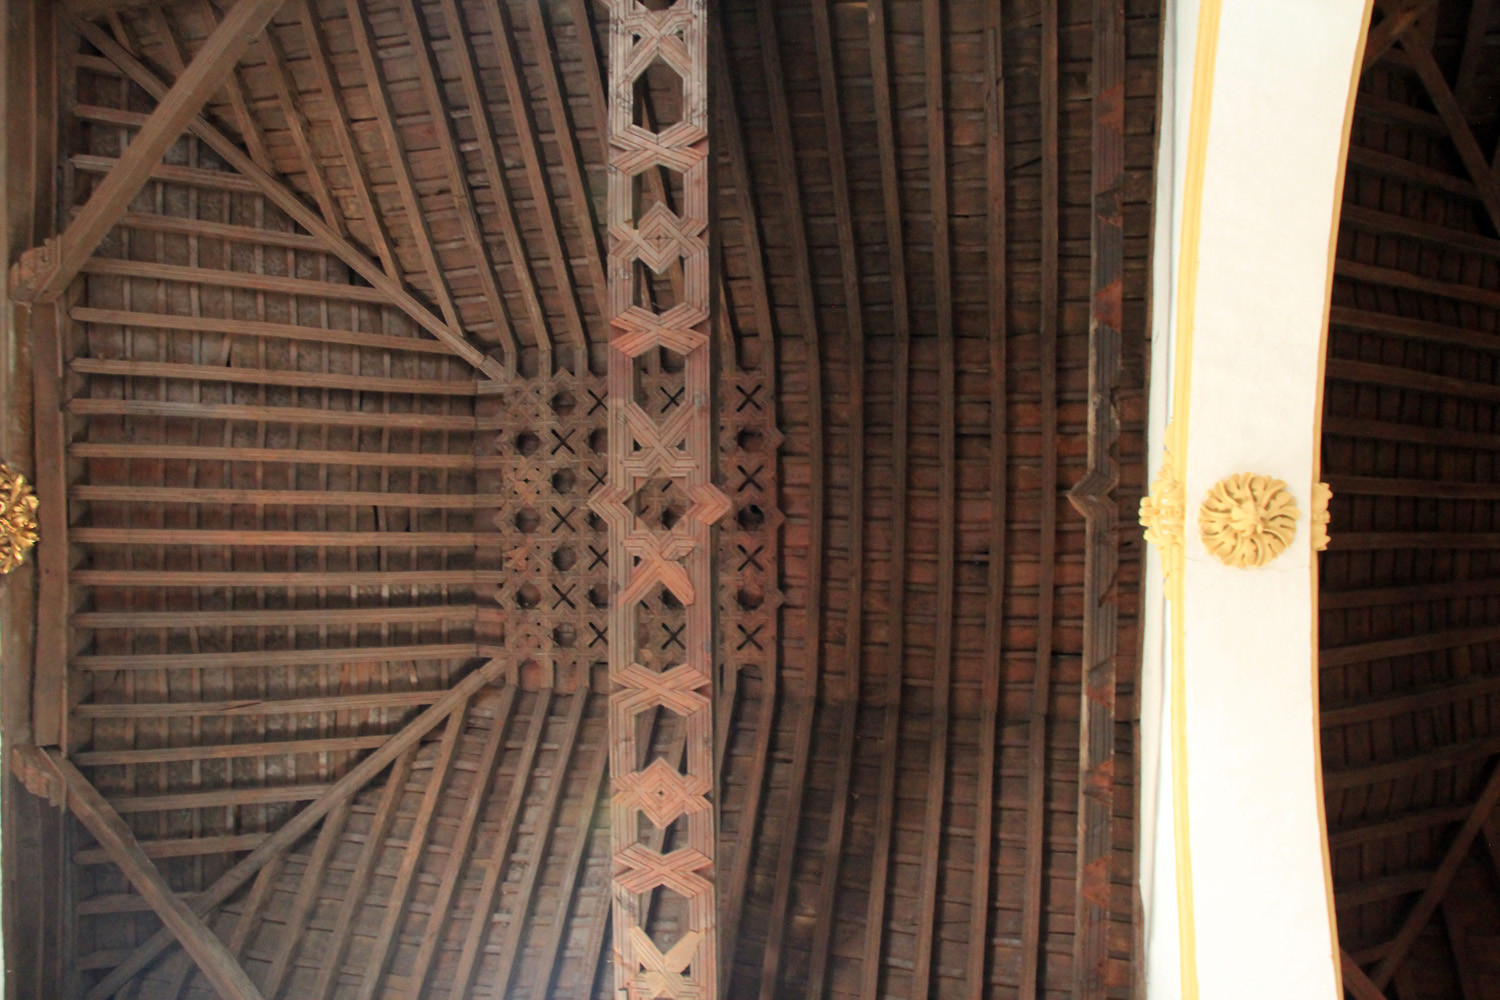 The Mudejar Ceiling of the Church of La Peza